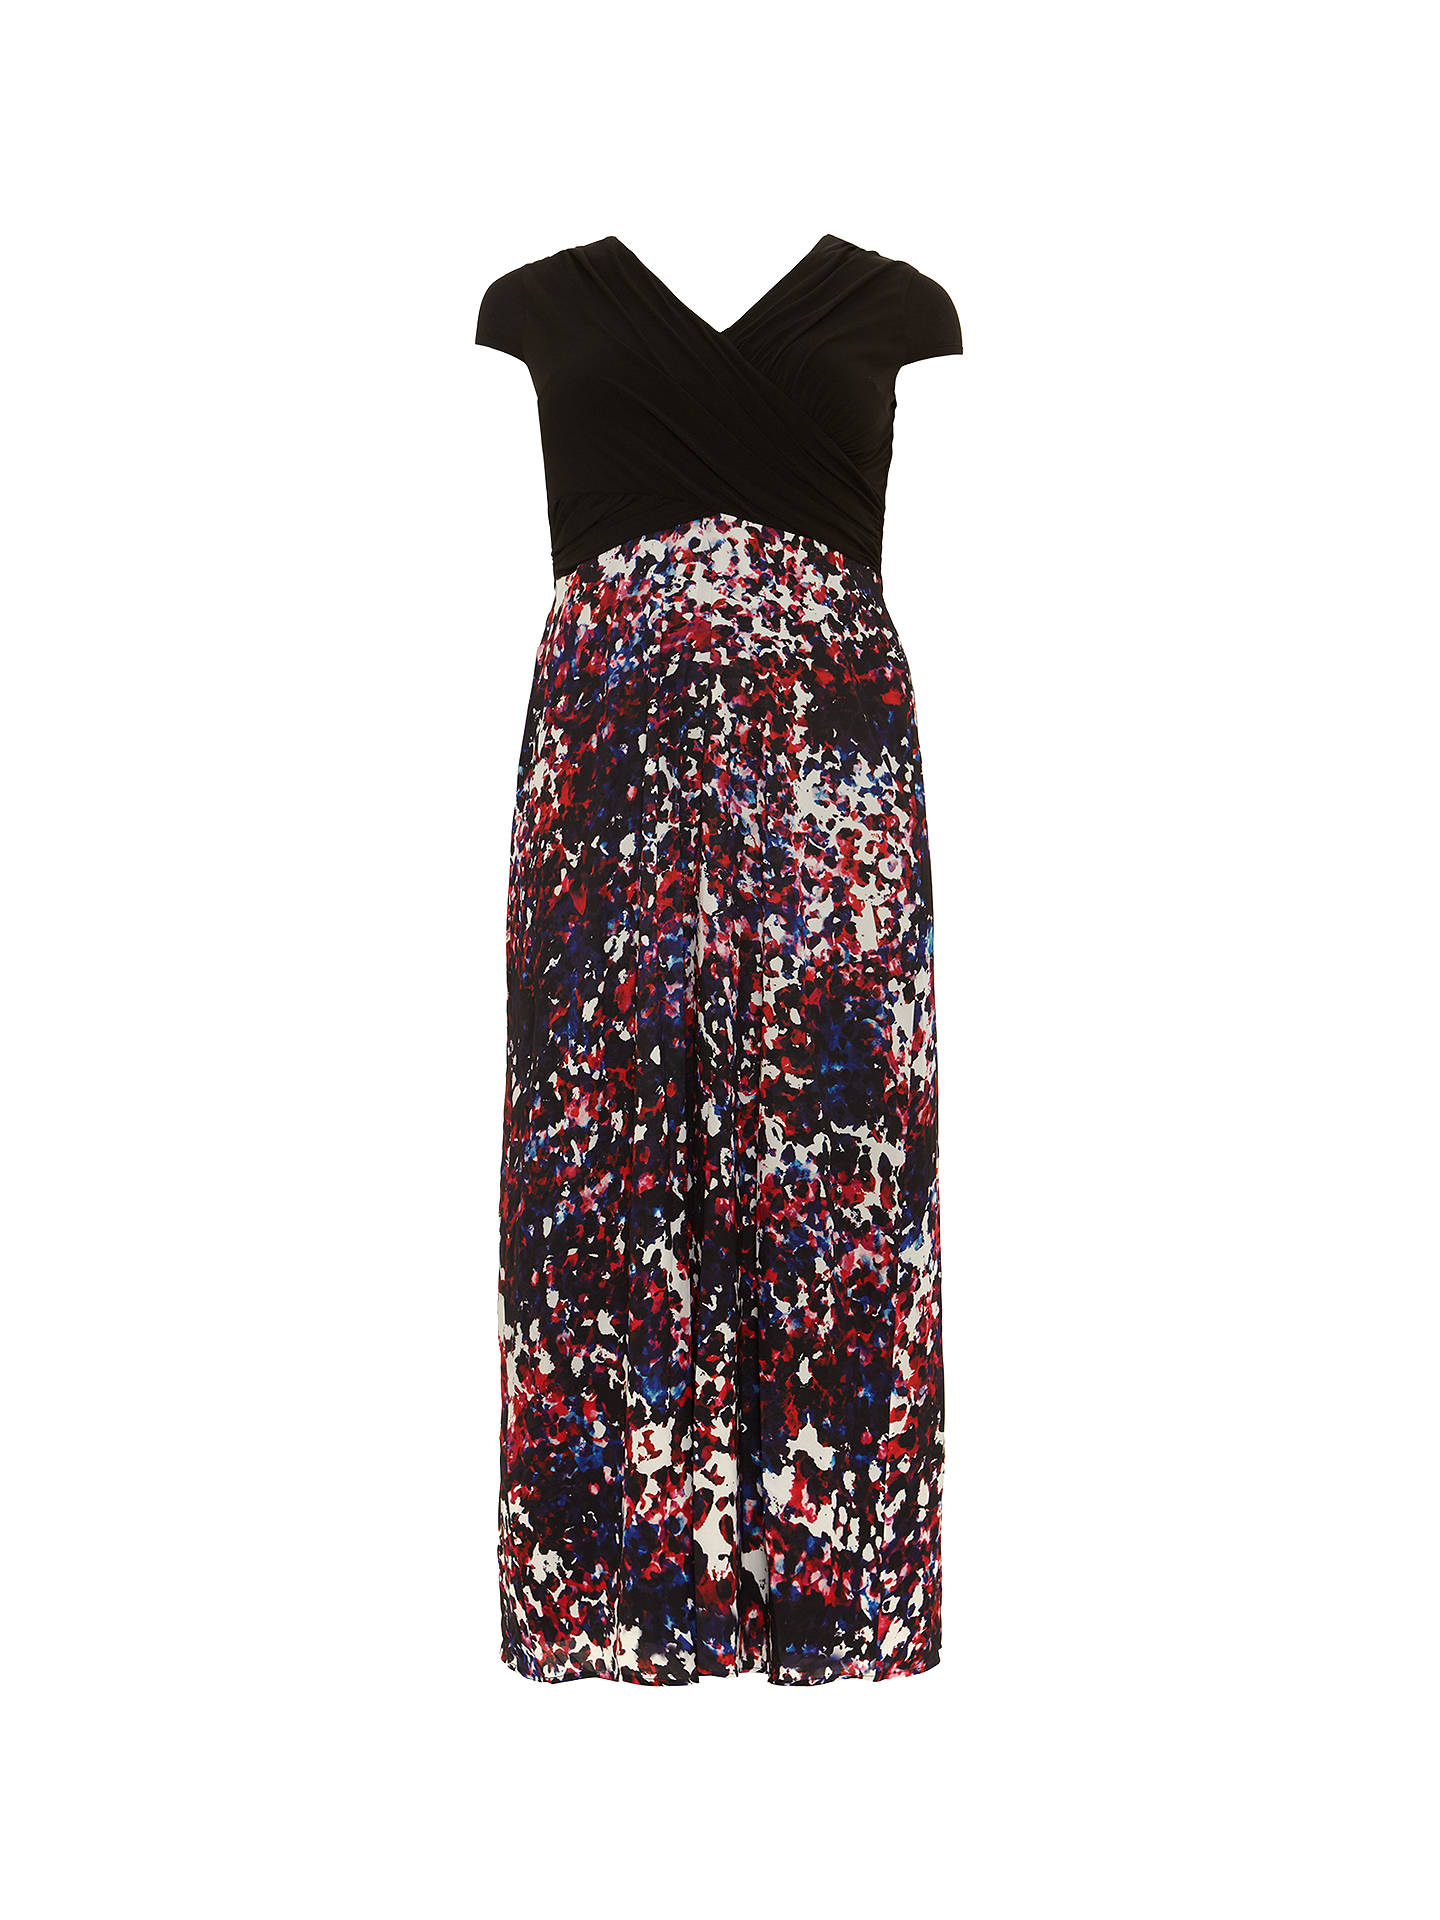 BuyStudio 8 Felicity Dress, Black/Multi, 14 Online at johnlewis.com